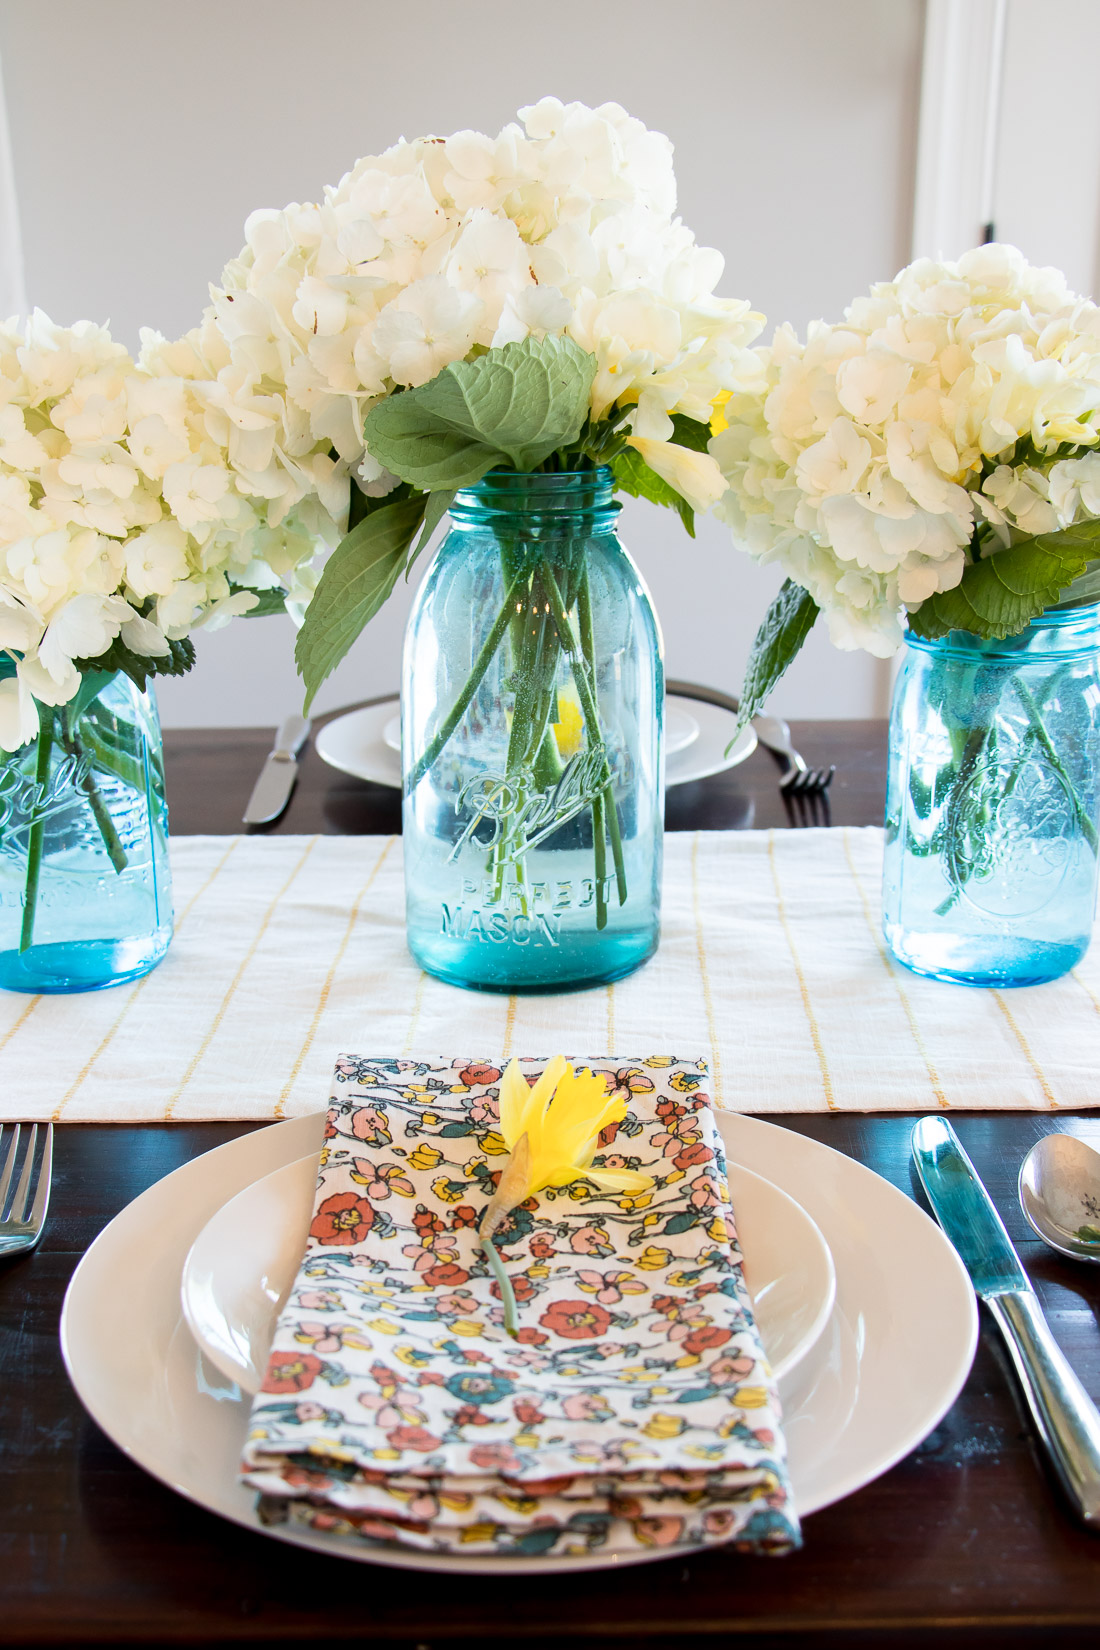 Affordable spring Table Setting Tips - Target Hearth and Hand : spring table setting - pezcame.com